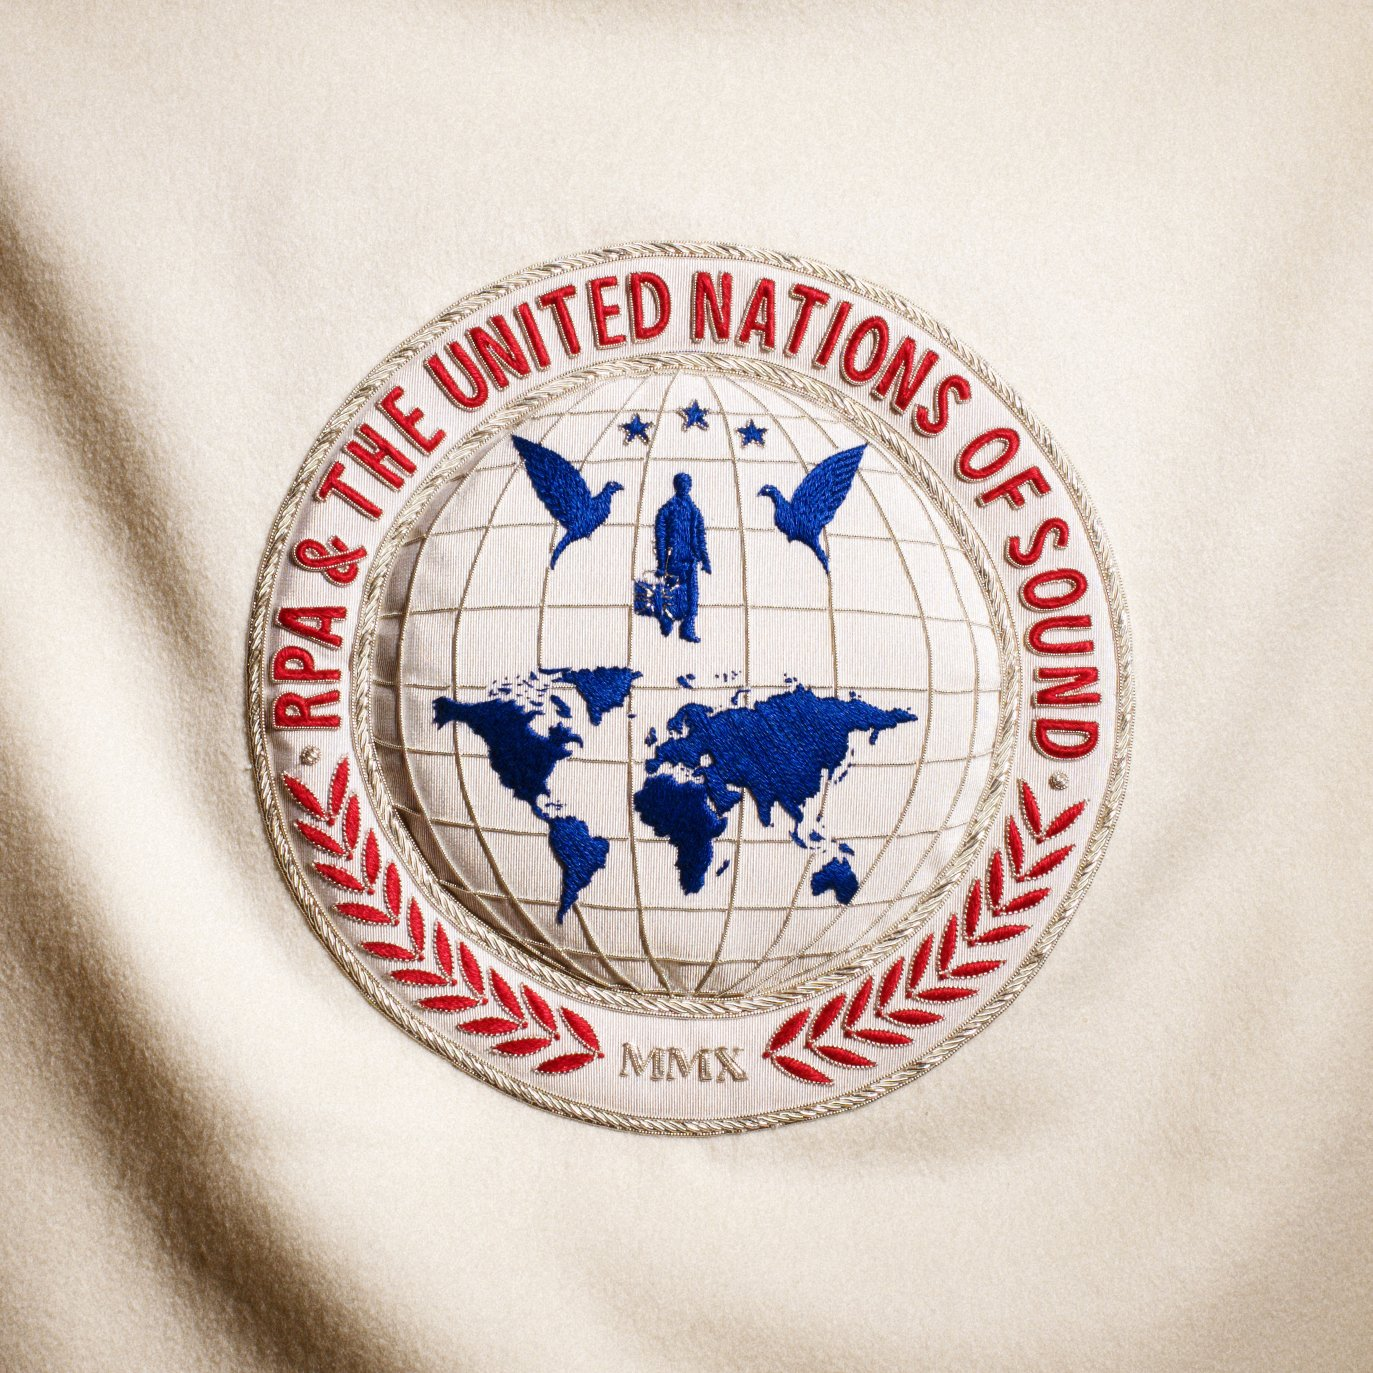 Richard Aschroft & the United Nations of Sound, United Nations of Sound